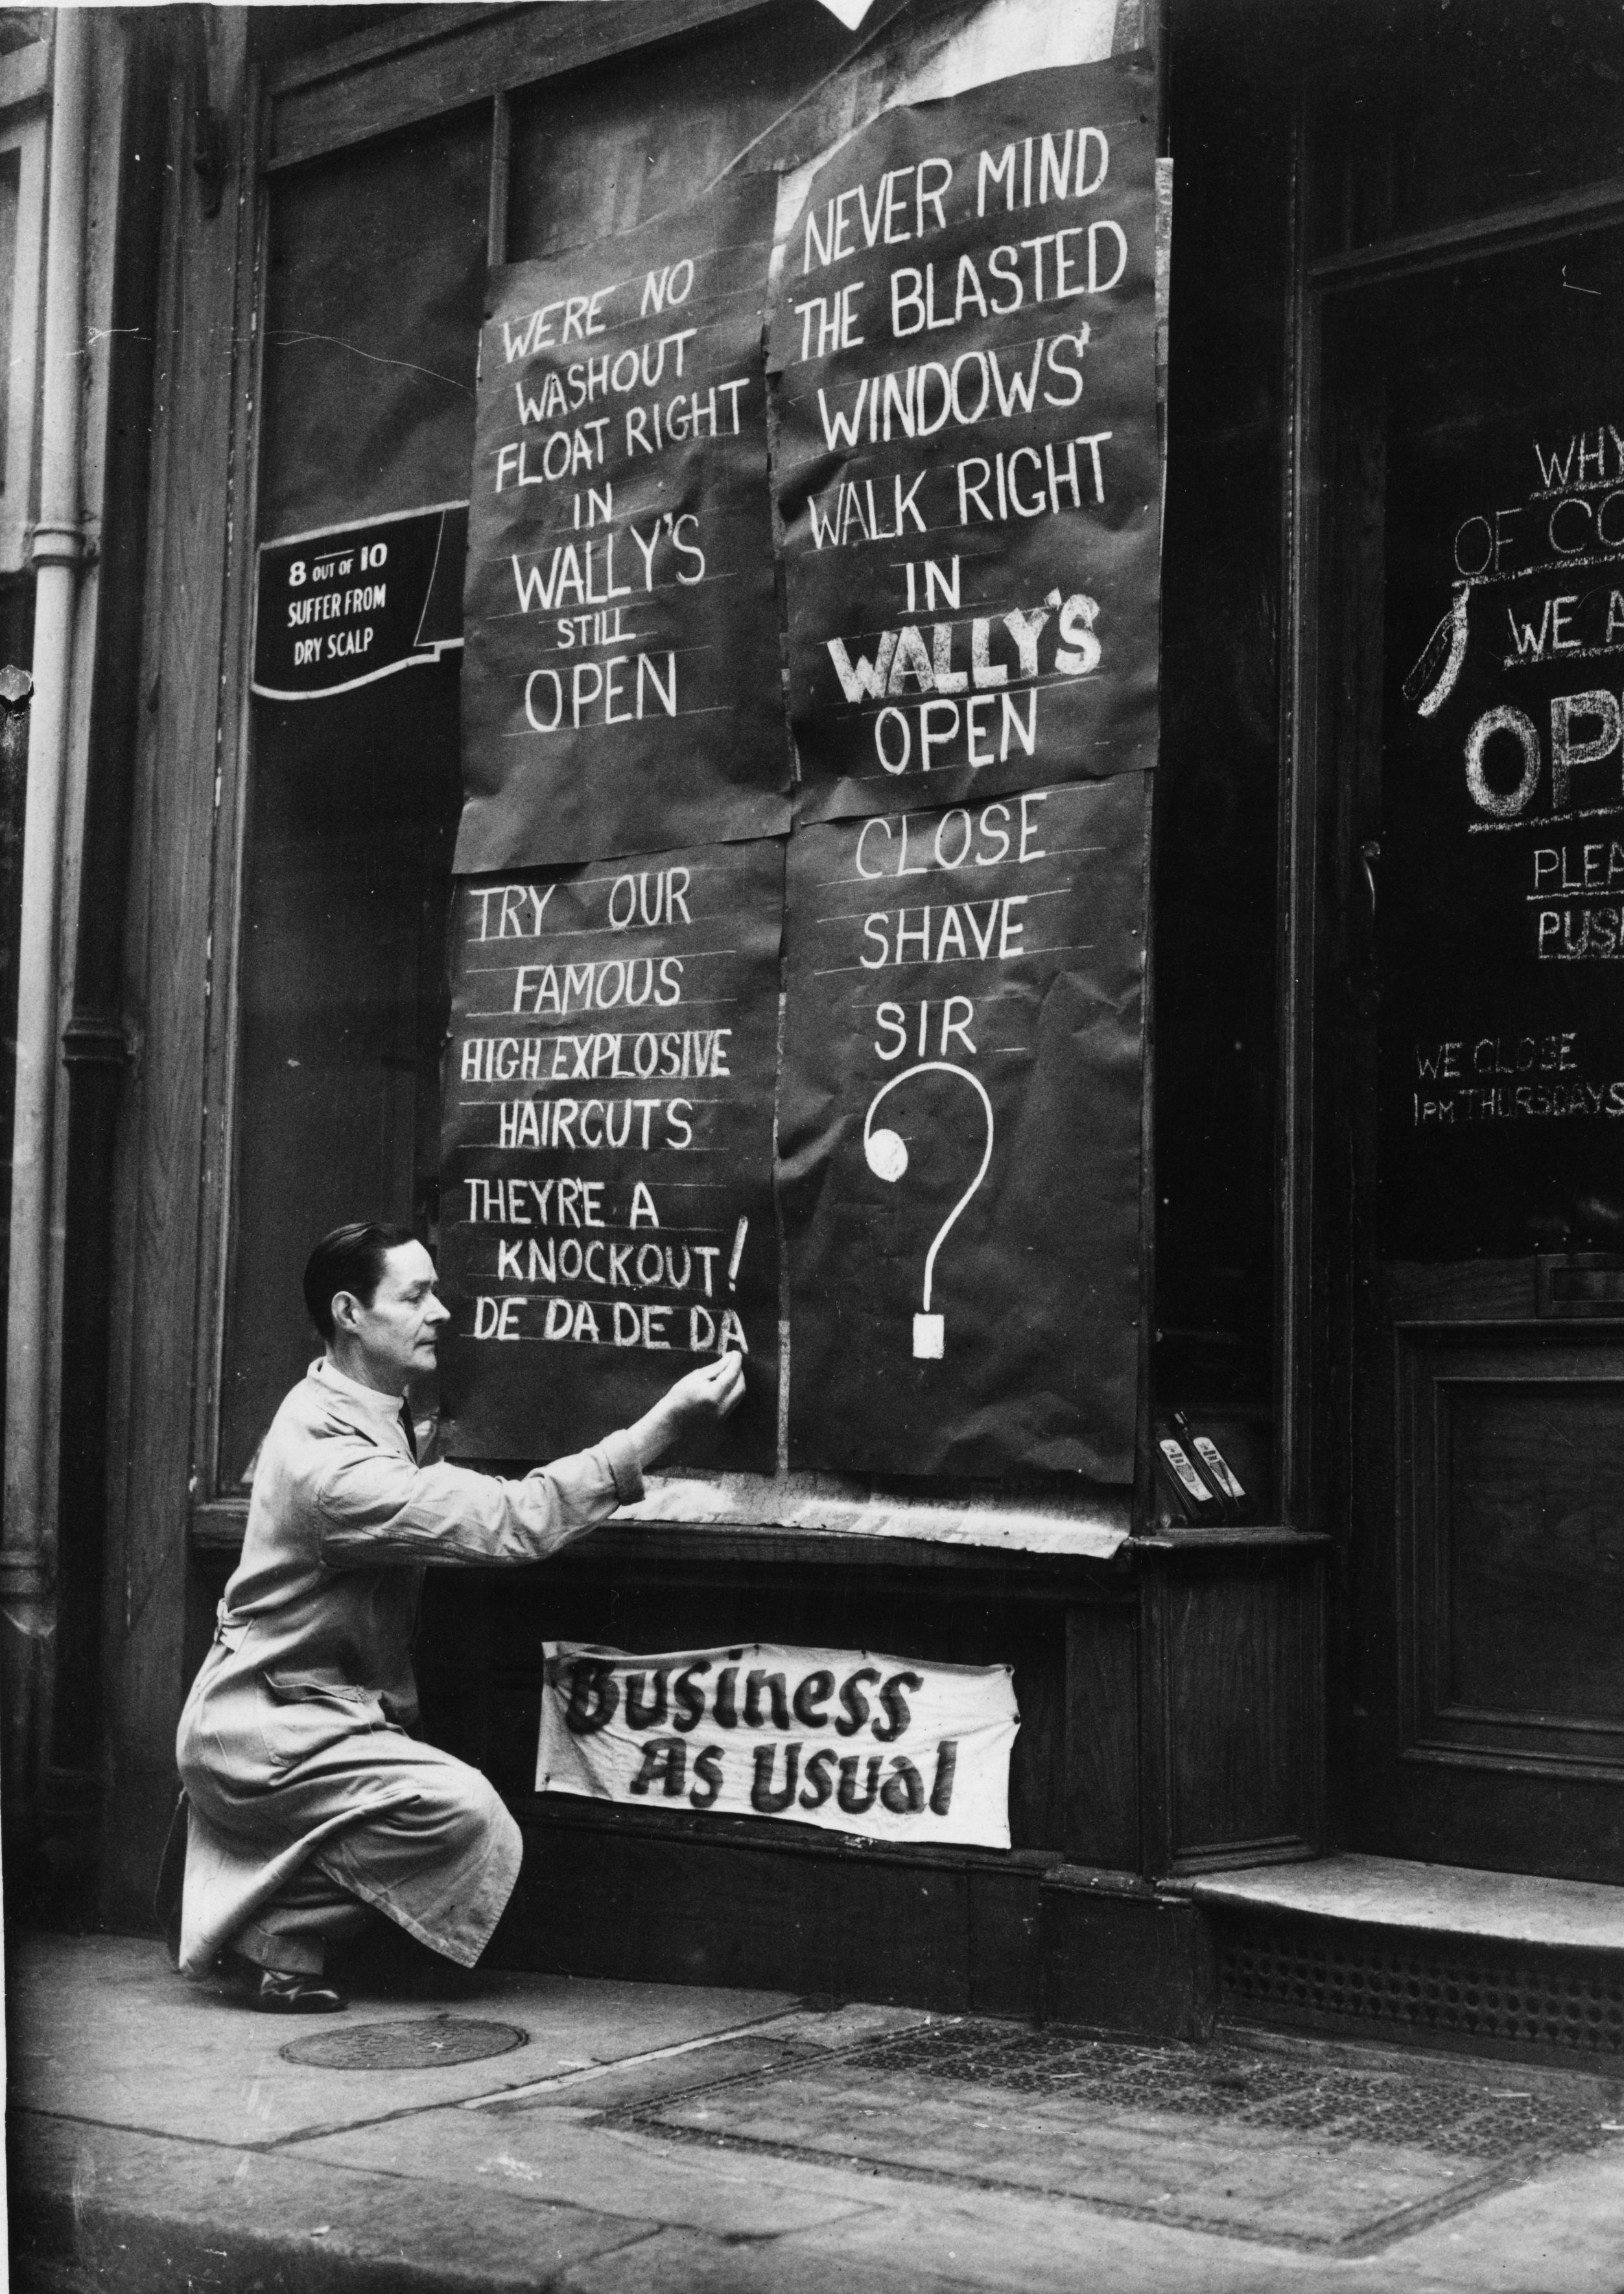 """""""Close shave sir?"""" A windowless Wally's barber shop in St Martin's Street shows its defiance during the London Blitz, November 1940. (Fox Photos/Getty Images)"""